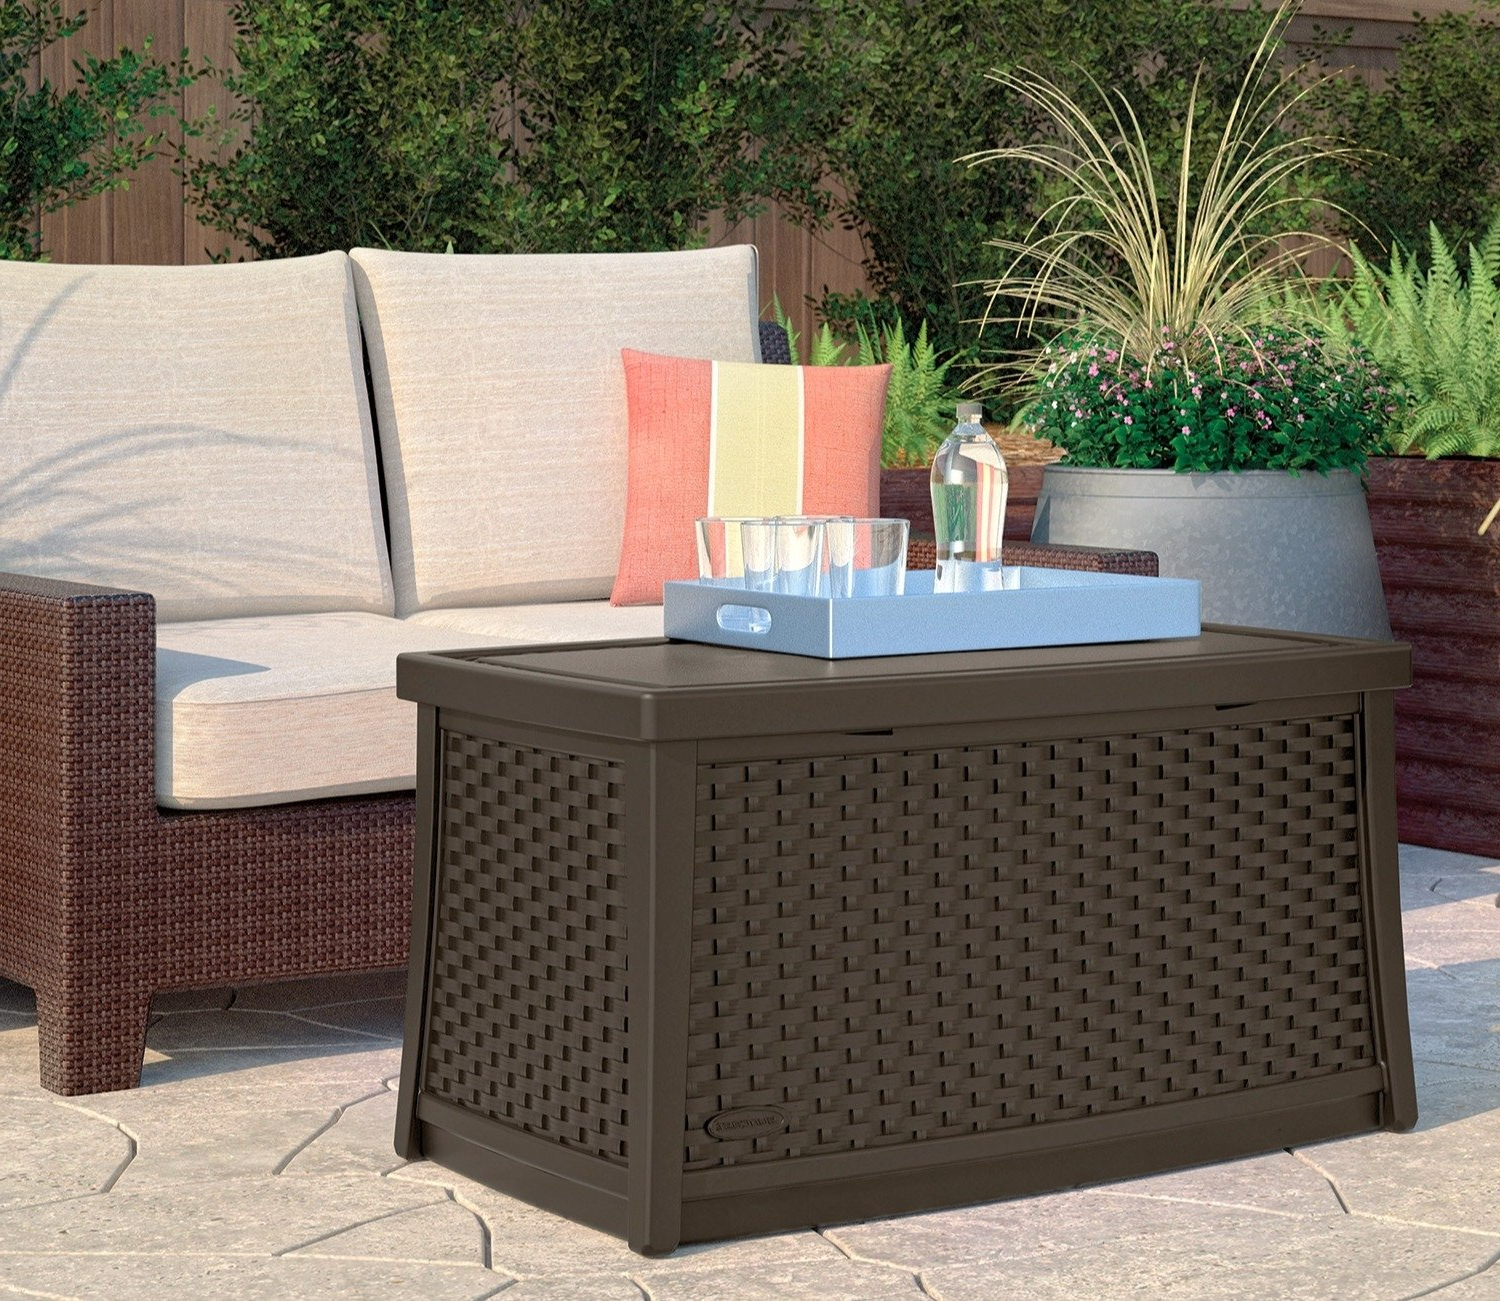 Donnell Coffee Tables Within Most Recent Suncast Wicker Coffee Table With Storage – Gardensite.co (View 19 of 20)